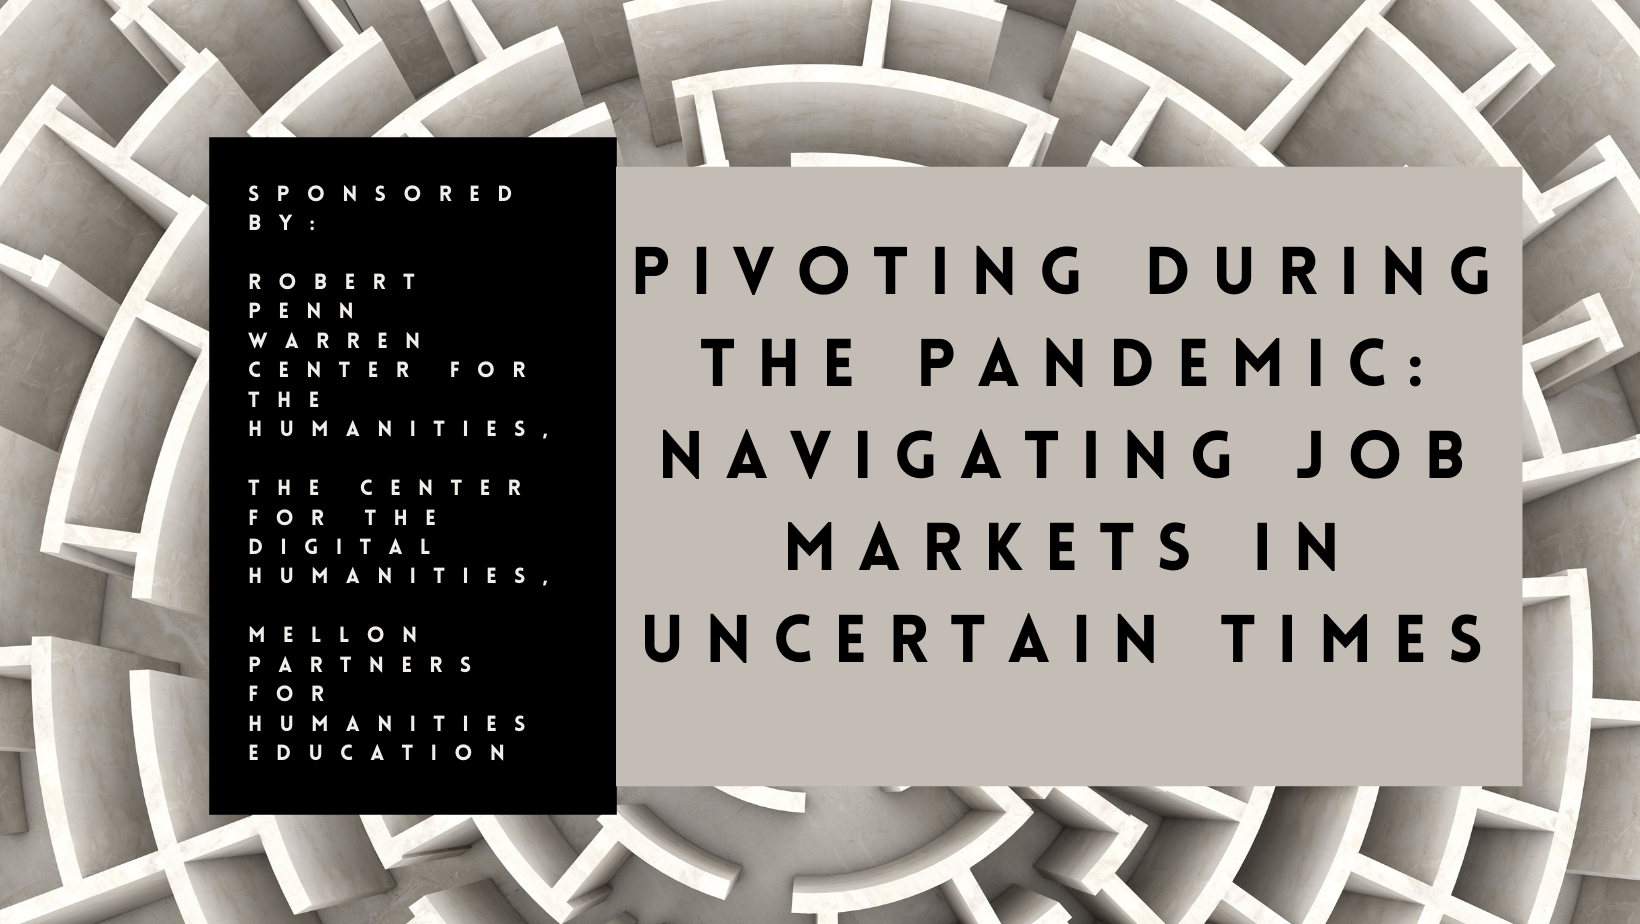 grey and white maze background text reads pivoting in the pandemic: navigating job markets in uncertain times sponsored by RPW, DH Center, and Mellon Education Partners